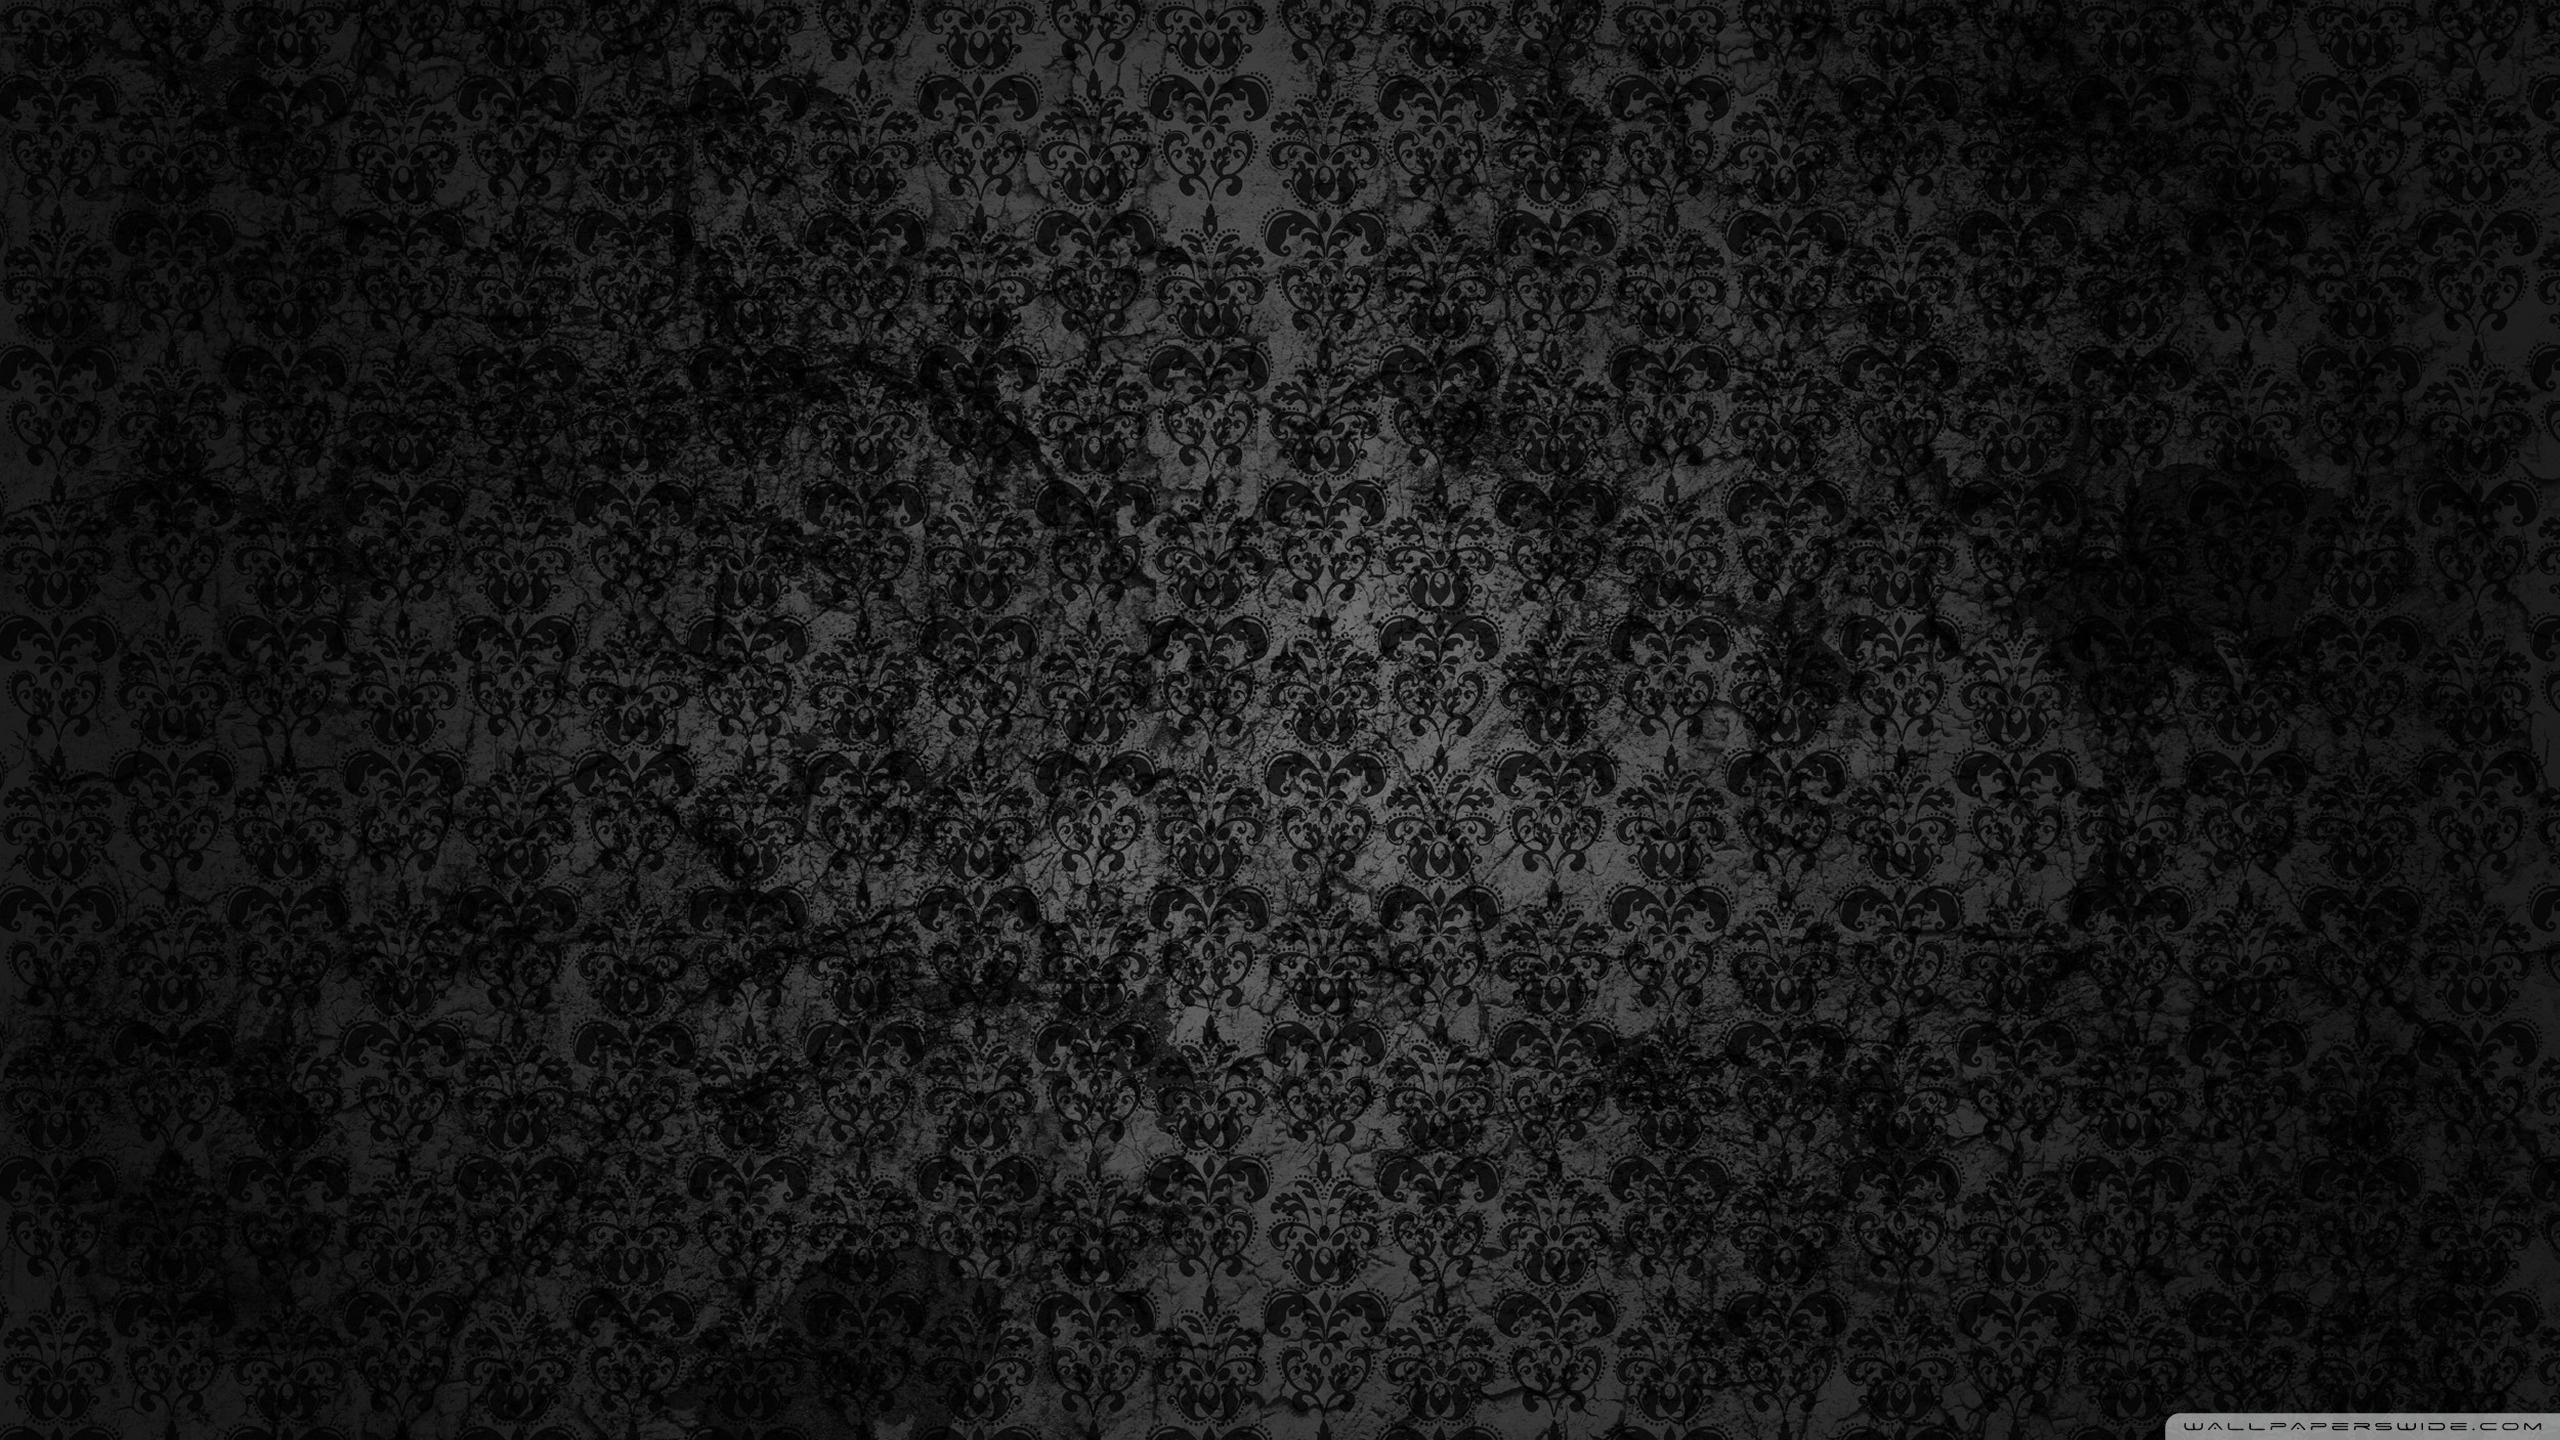 Black Grunge Wallpaper 4k Goodpict1st Org